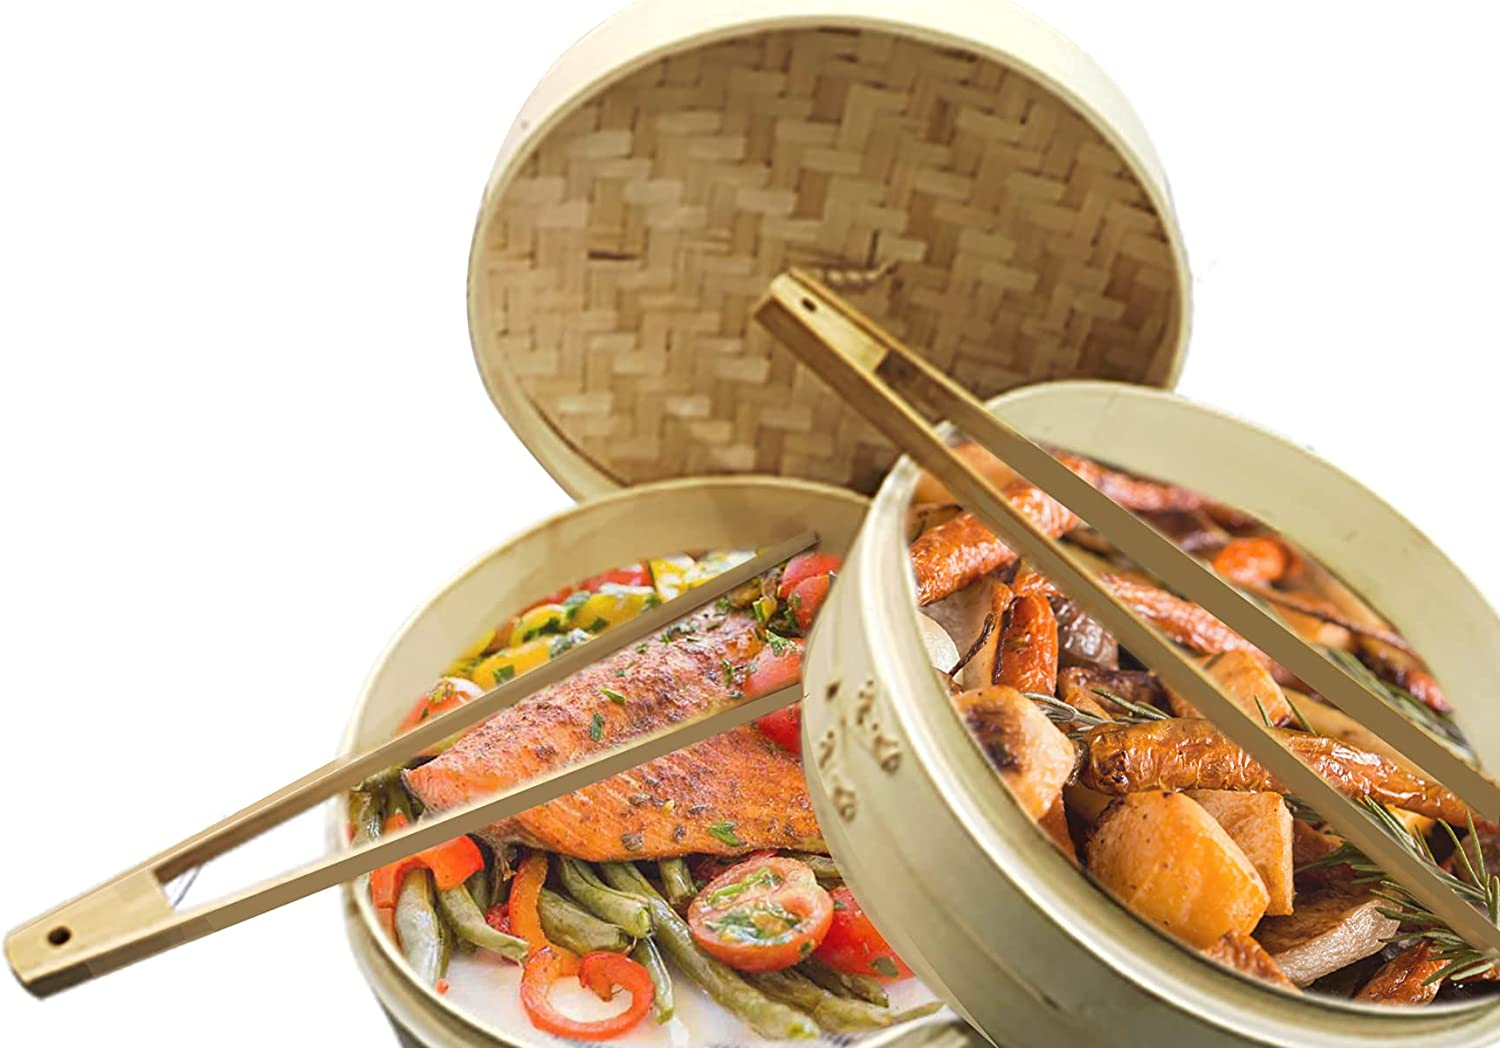 Bamboo Steamer for Cooking Vegetables and Dumplings-Includes 2 Tier Food Steamer and Silicon Mat -Great for Dim Sum, Chicken, Fish, and Veggies - Steaming Basket- Food Steamers - Korean Cookware